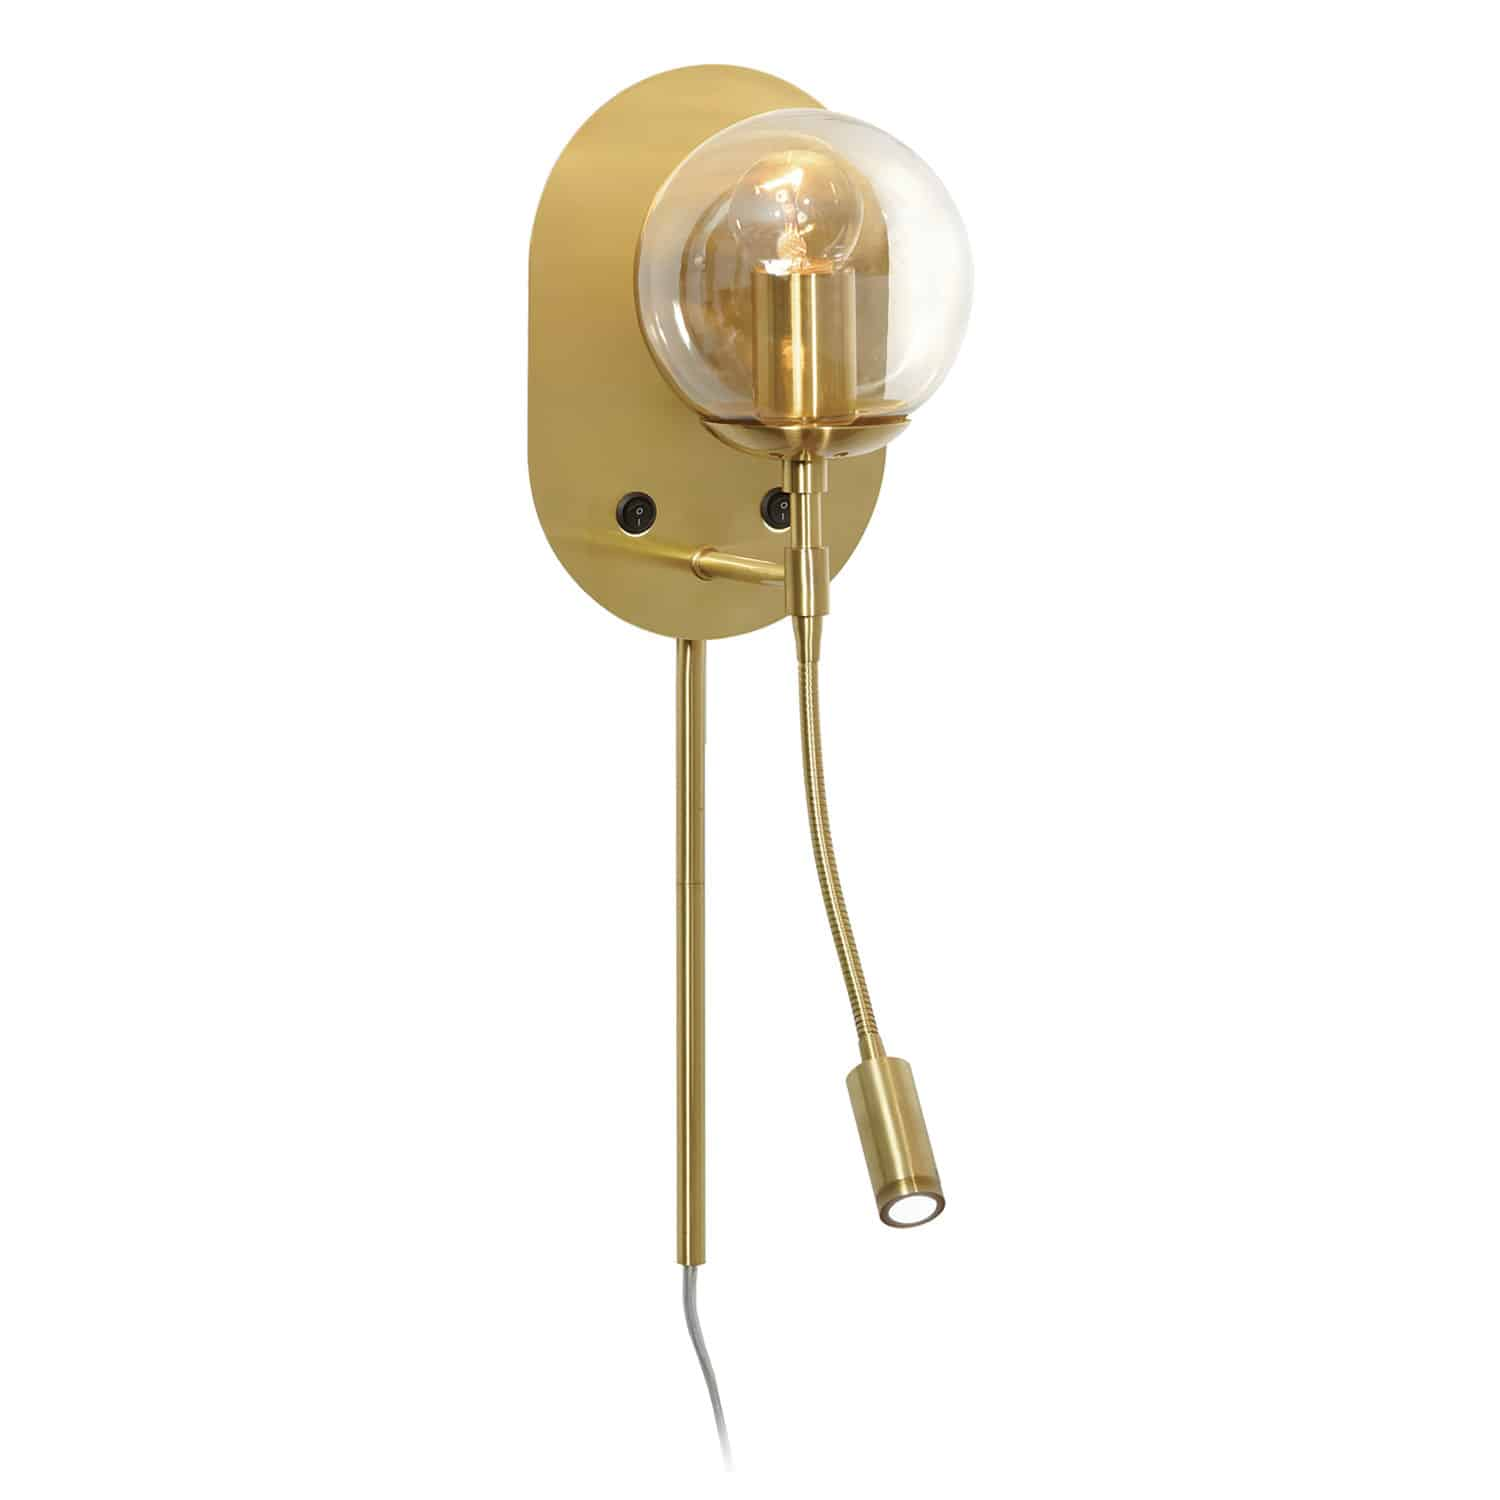 1 Light Incandescent Wall Sconce with LED Reading Light Aged Brass Finish